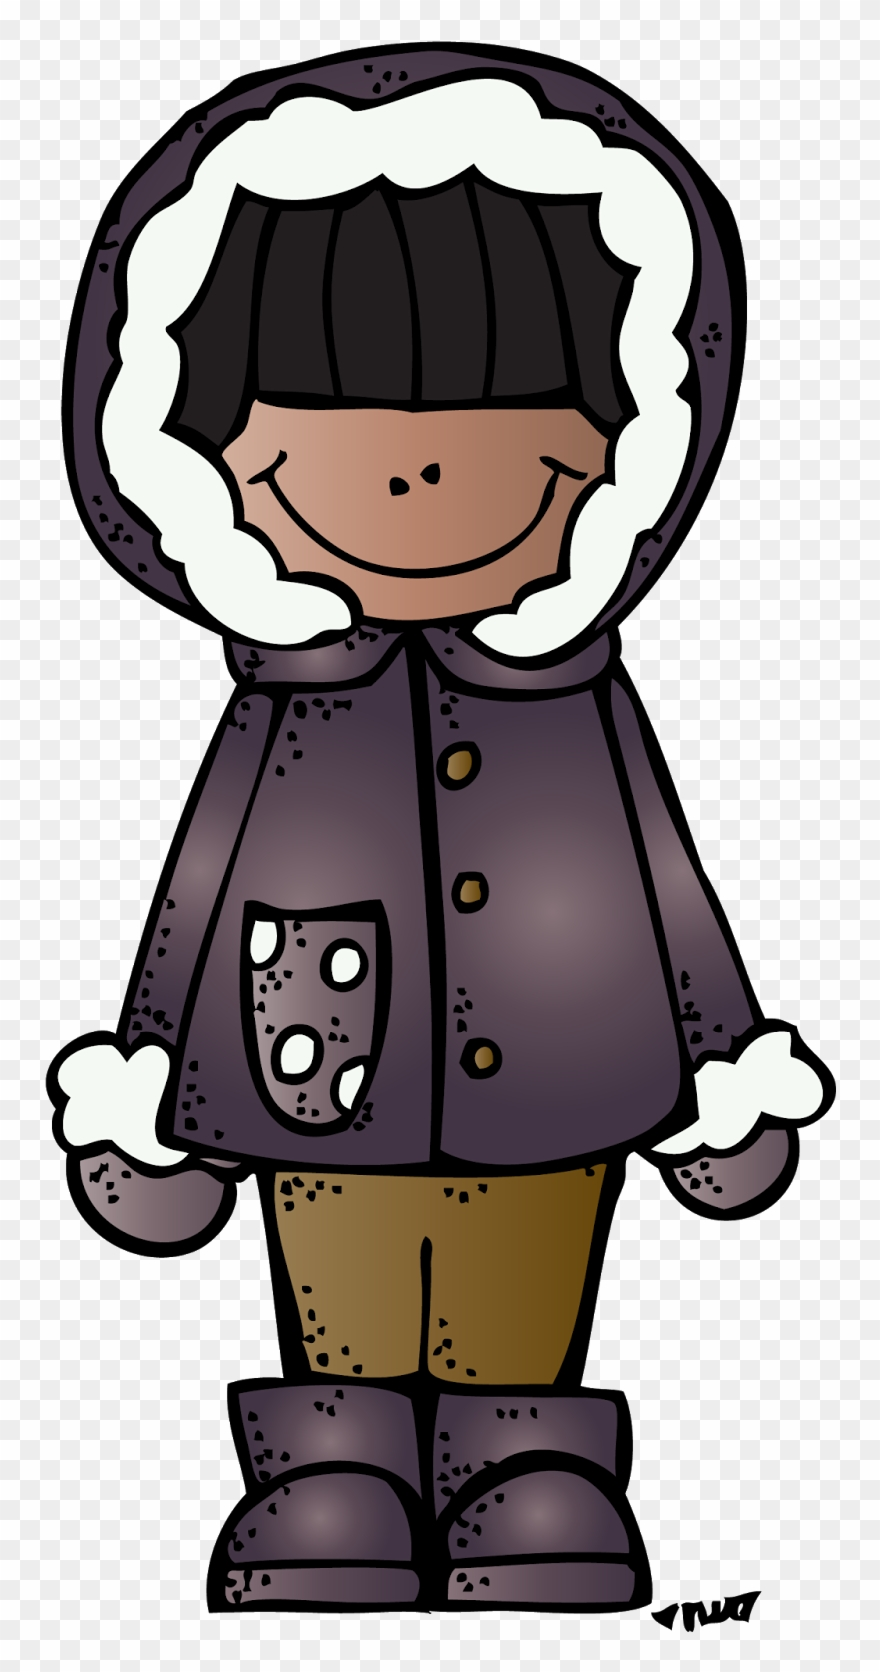 Melonheadz winter clipart clip art library stock The Peterson Post Snow Day January 27th - Melonheadz Boy ... clip art library stock